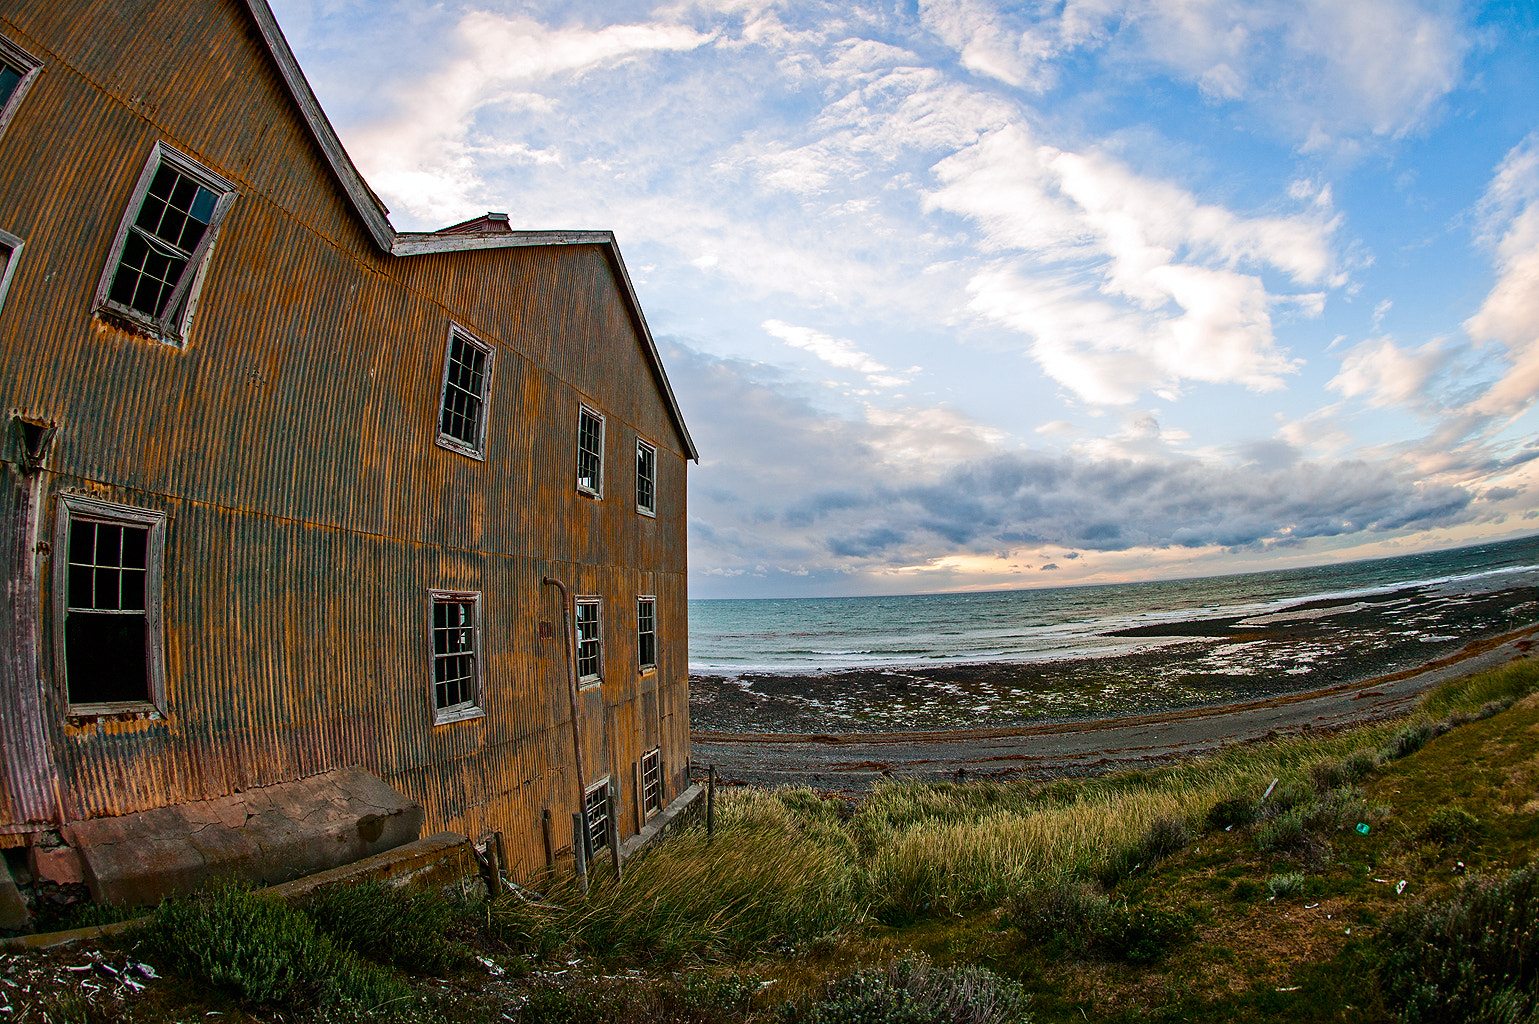 Photograph San Gregorio by Andres Harambour on 500px